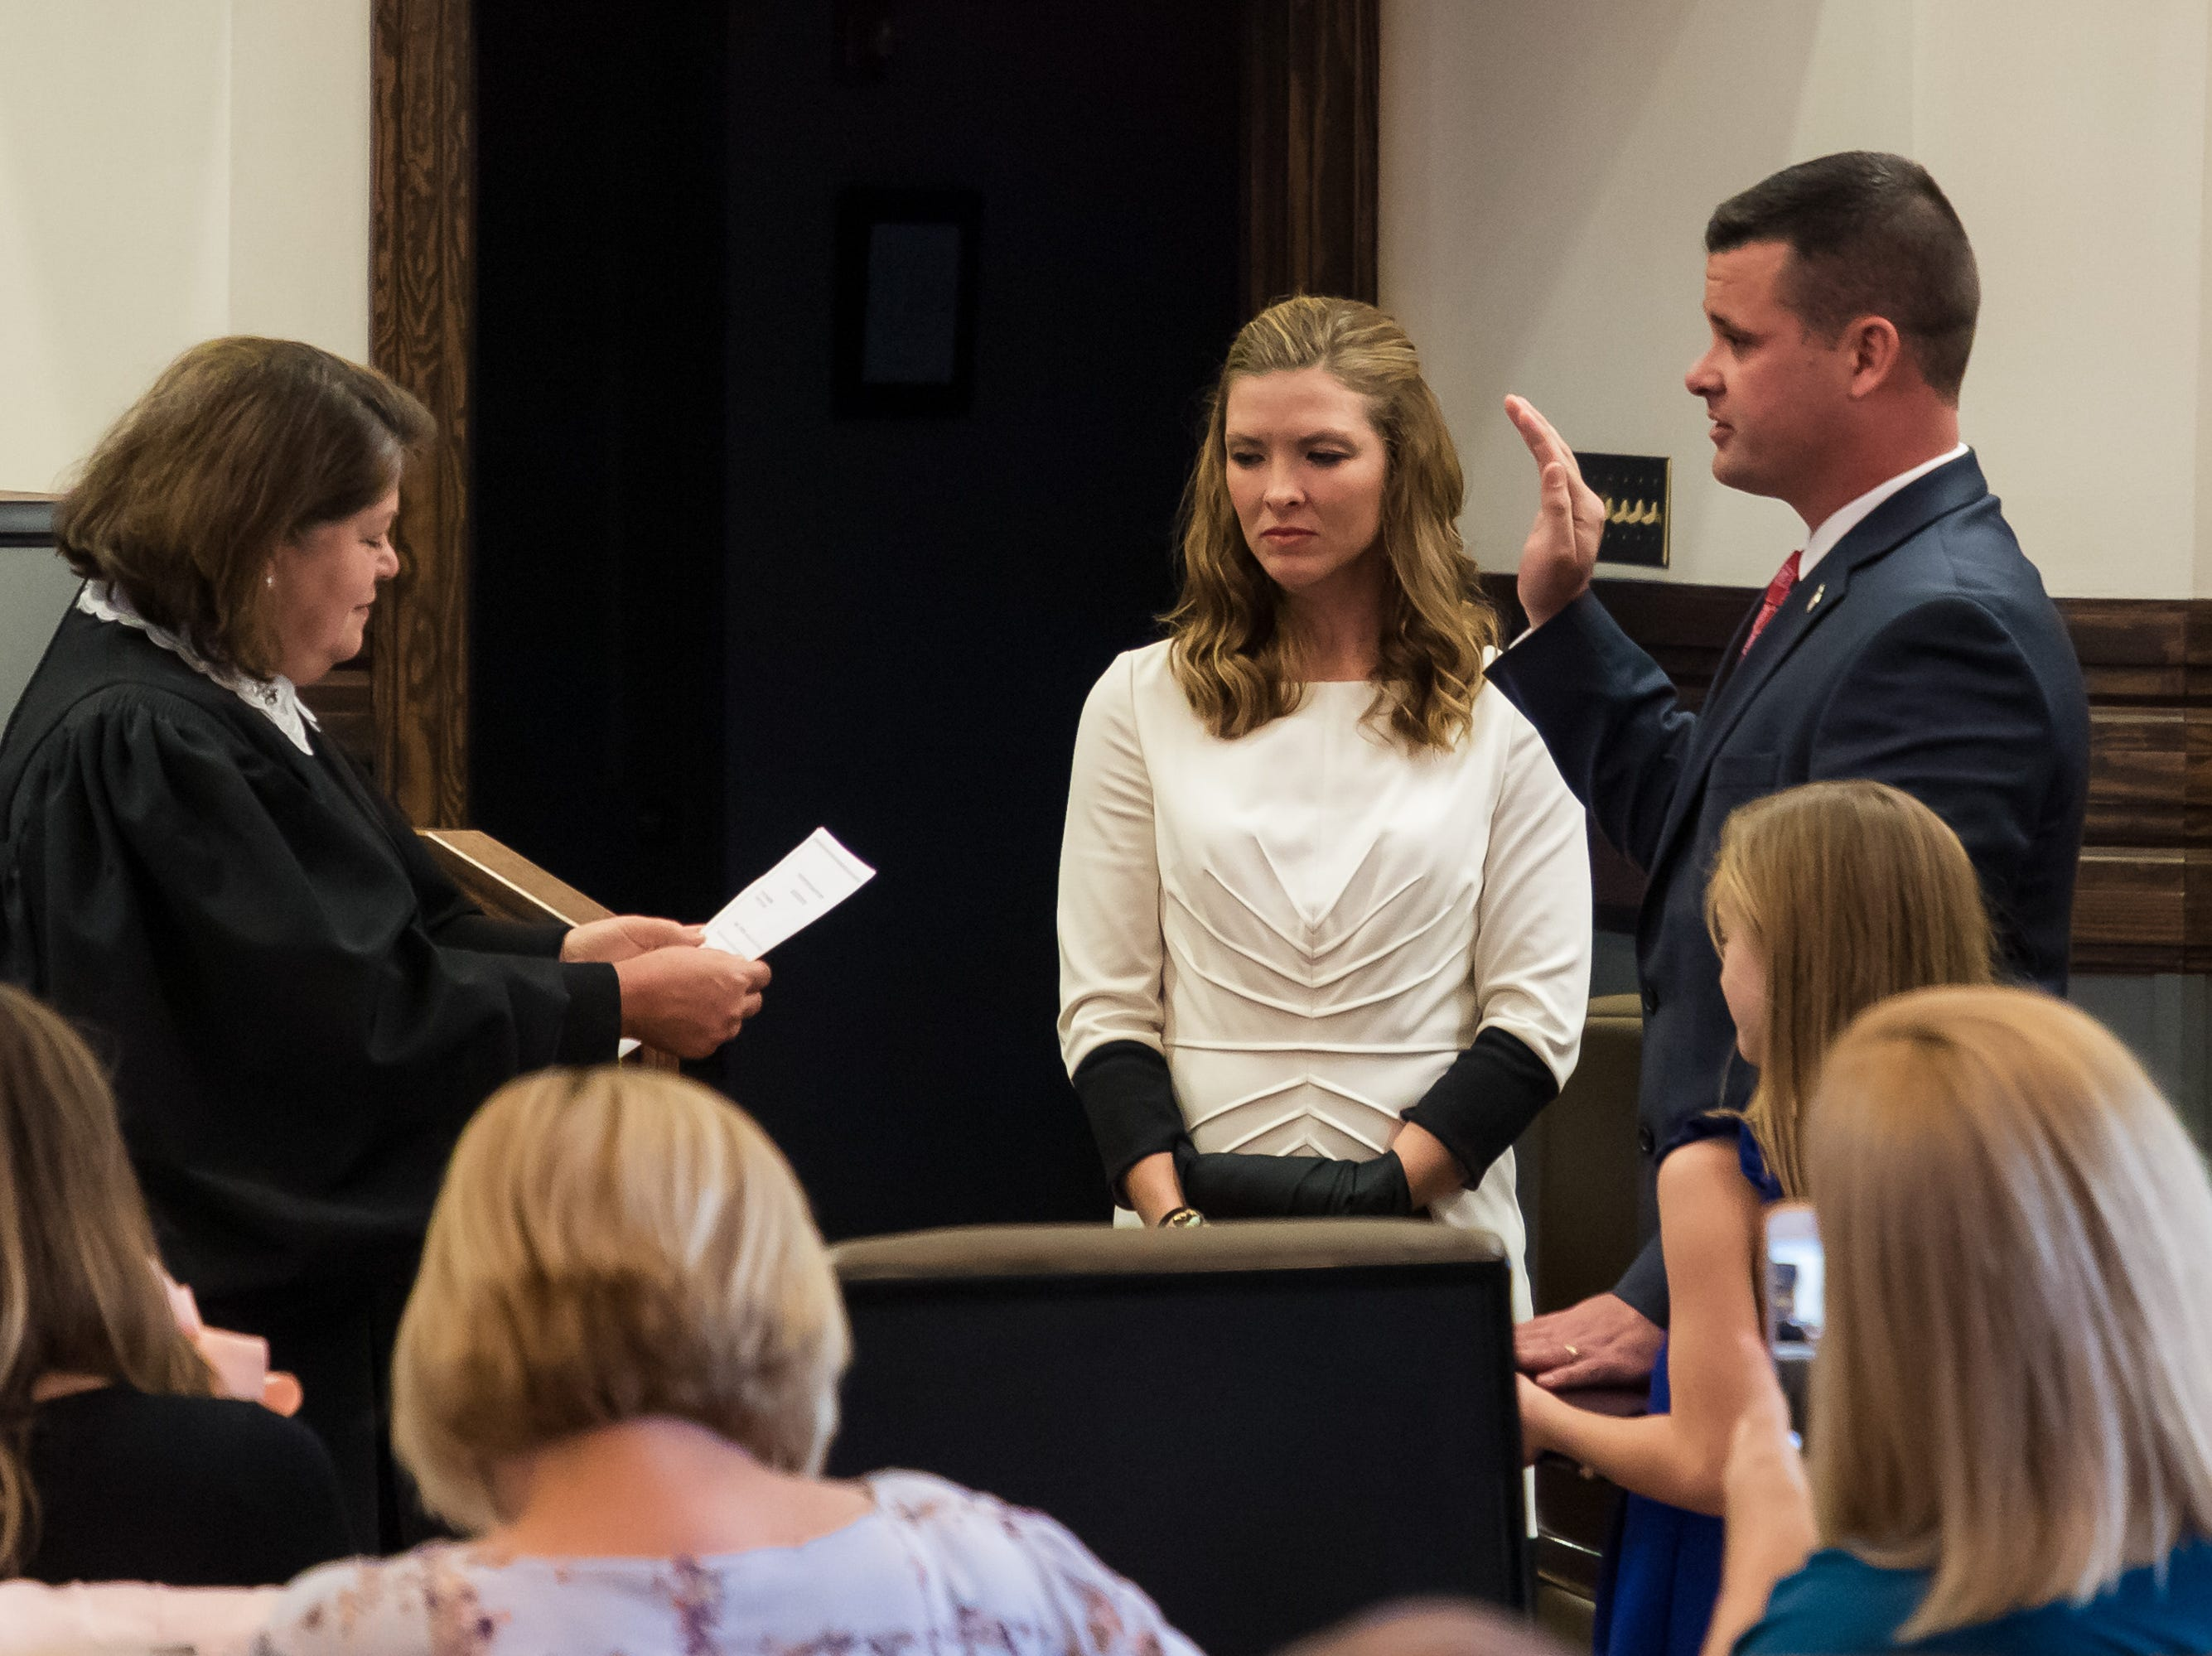 Justice Dawn Beam administers the oath of office to Lamar County and Youth Court Judge Brad Touchstone Wednesday, Jan. 2, 2019, as his wife, Janice, holds his robe, and his daughter Ryleigh, holds a Bible.